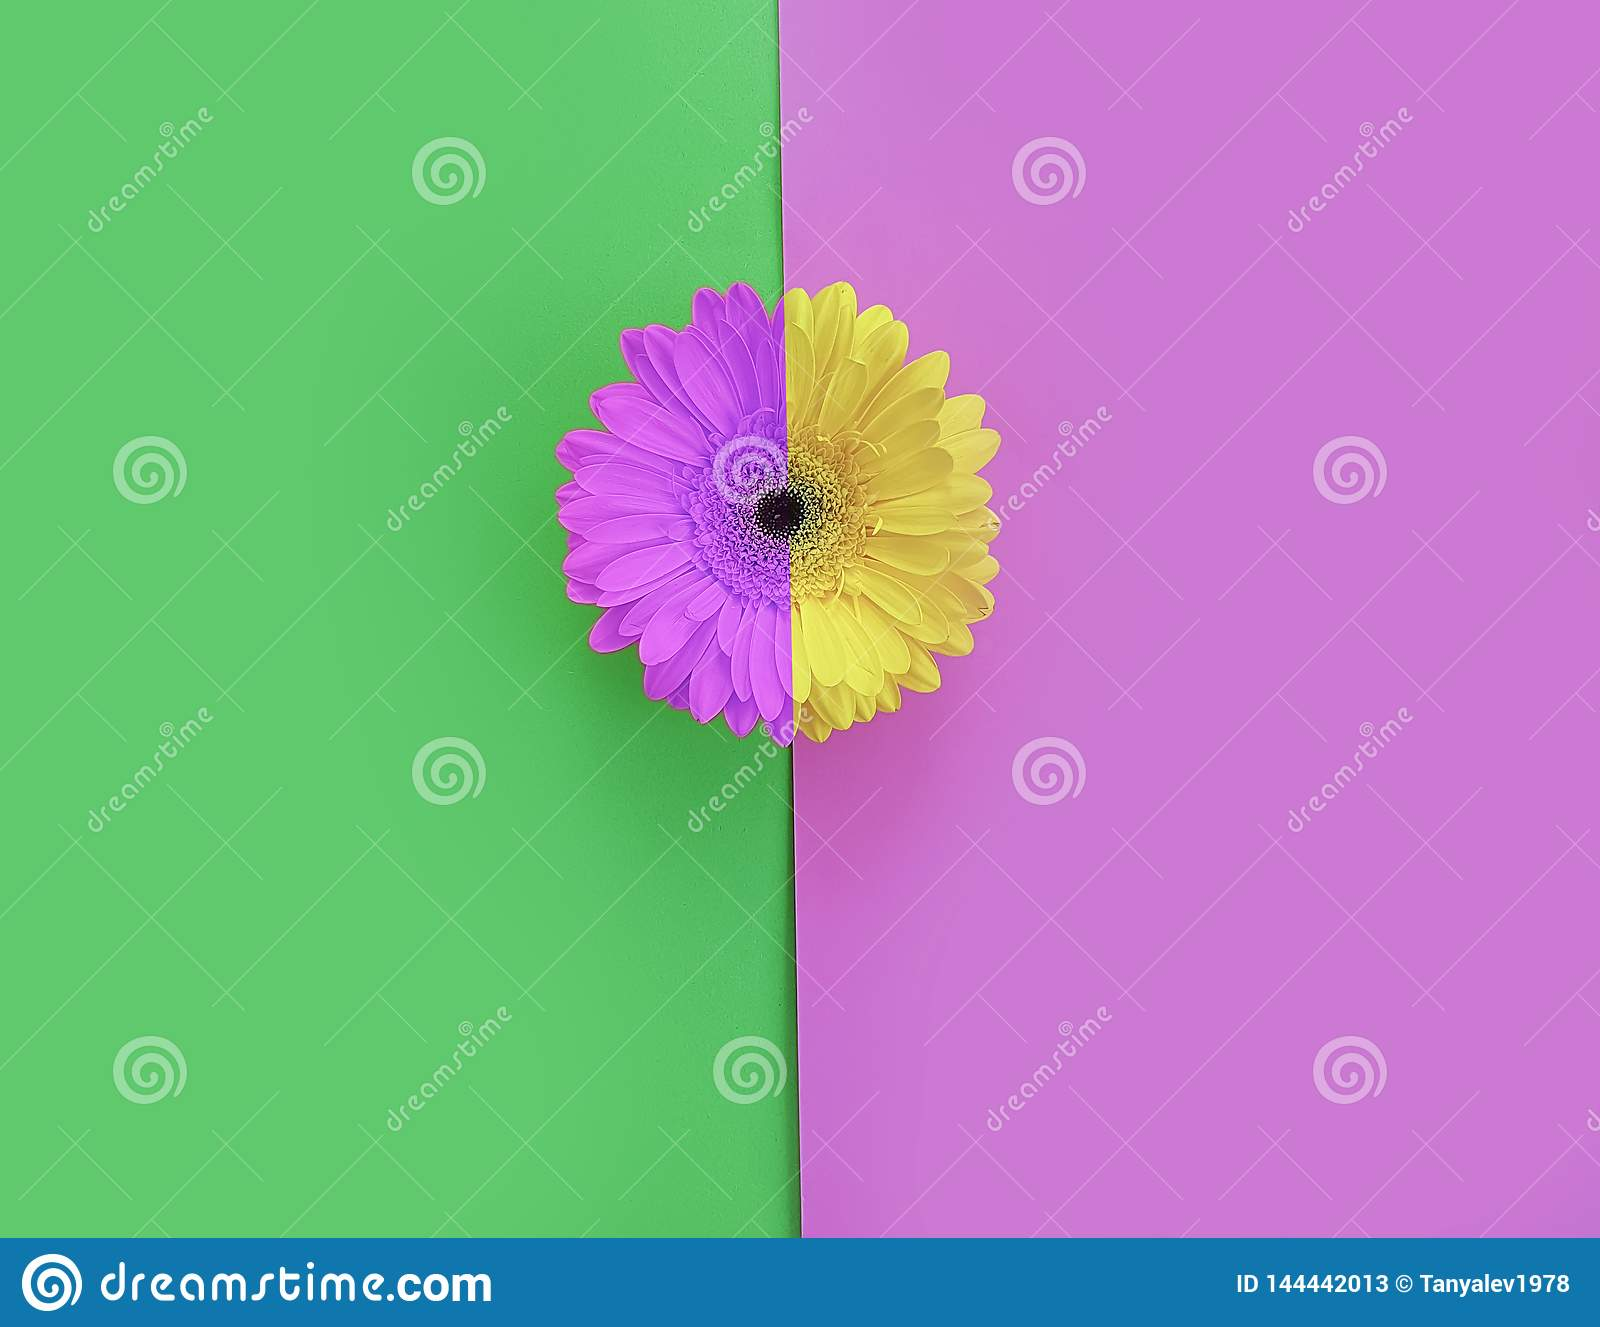 Flower gerbera on color background beautiful minimalism creative